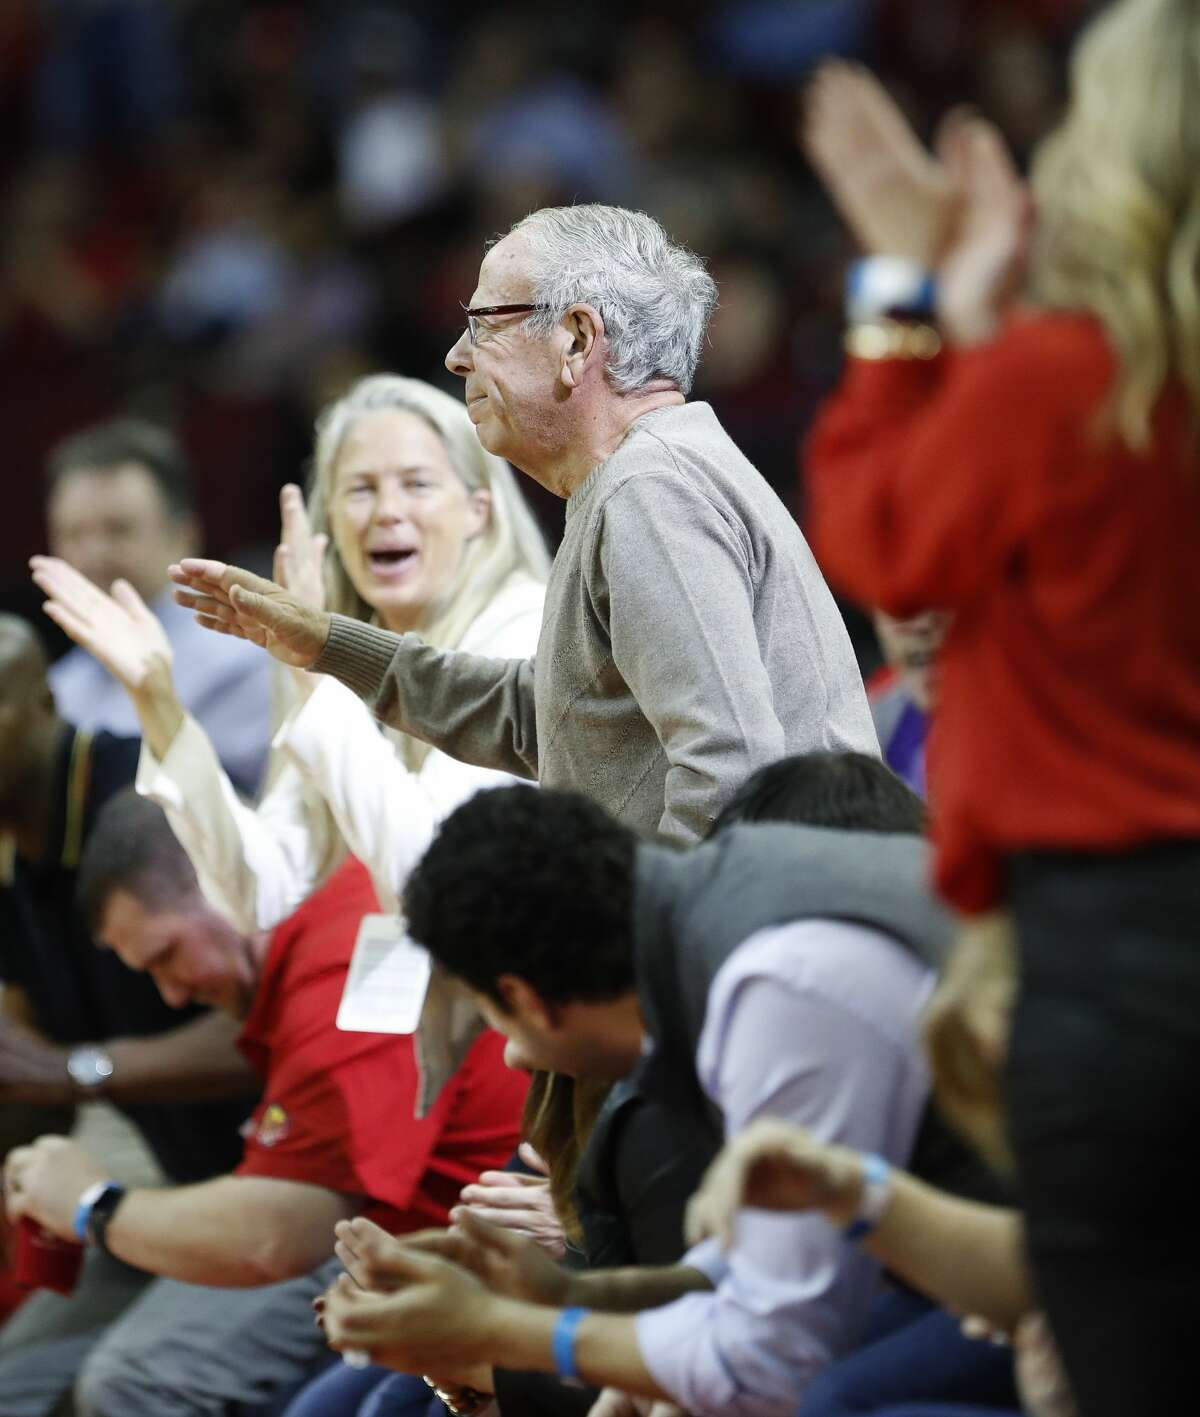 Former Houston Rockets owner Les Alexander waves to the fans during the first half of an NBA bassketball game at Toyota Center, Friday, Feb. 9, 2018, in Houston. ( Karen Warren / Houston Chronicle )